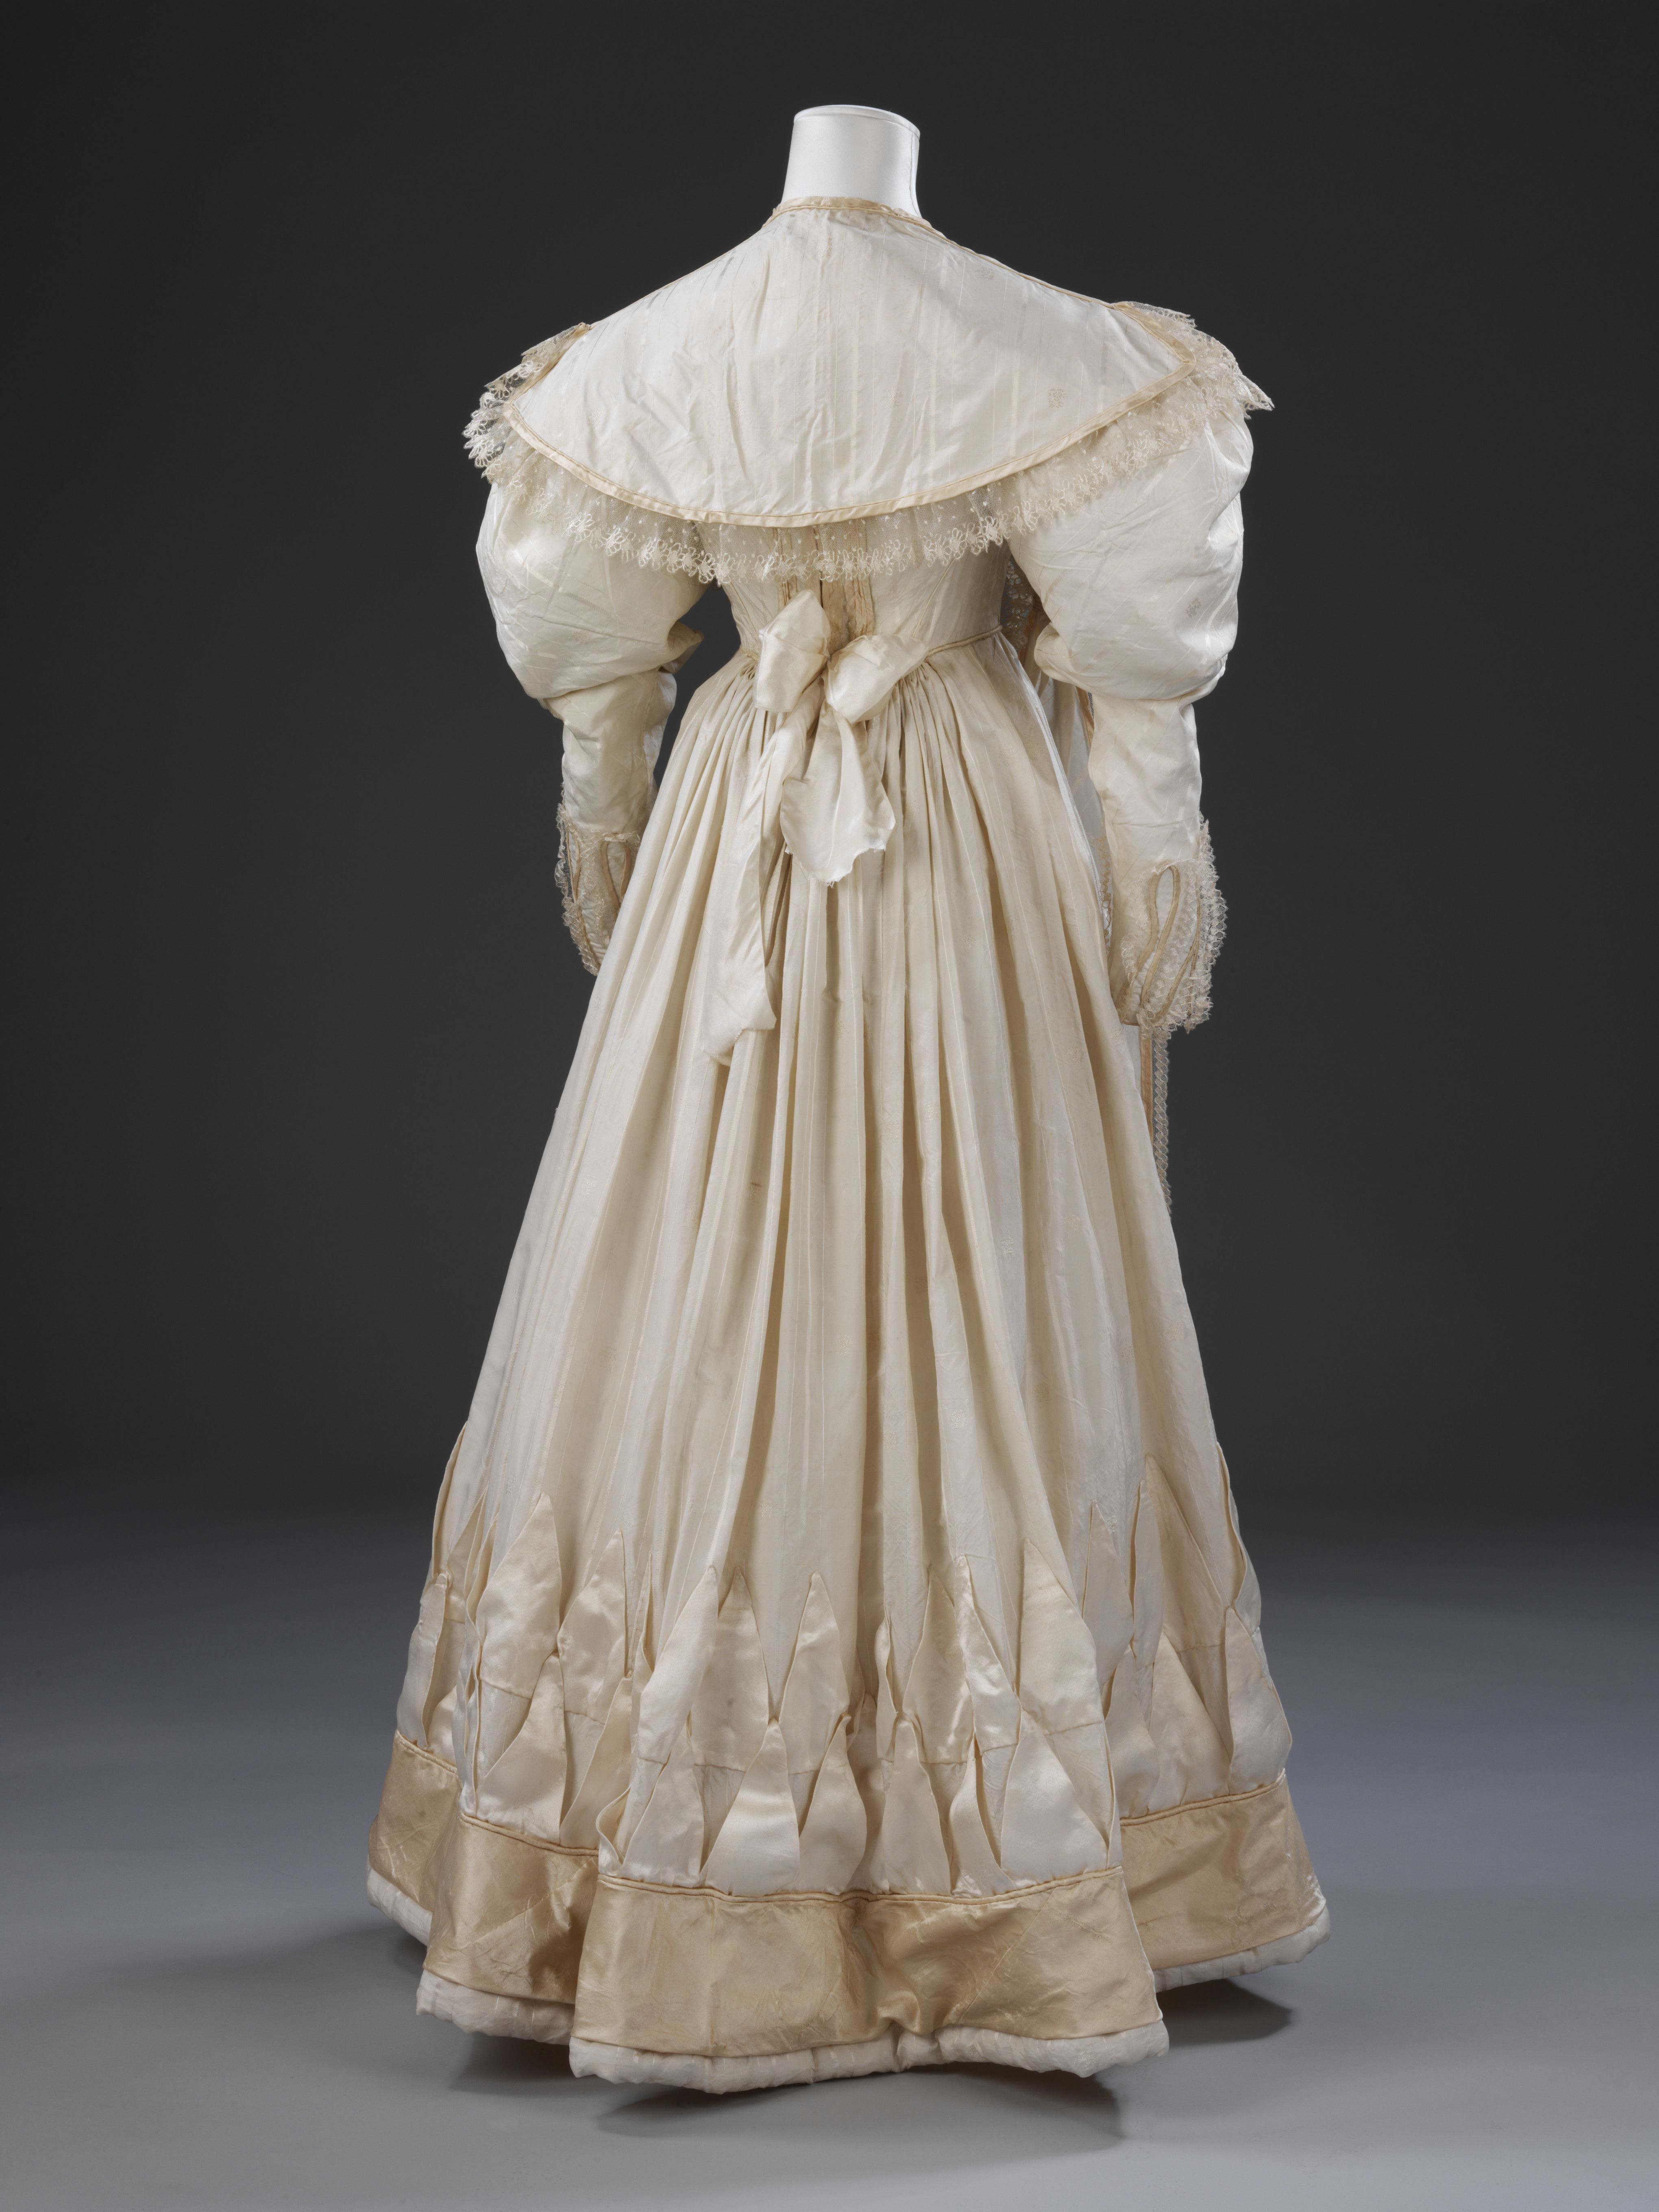 #Wedding dress worn by Eliza Larken for her marriage to William (later 6th Baron) Monson at St. Giles in the Fields Church, London,1828. l Victoria and Albert Museum